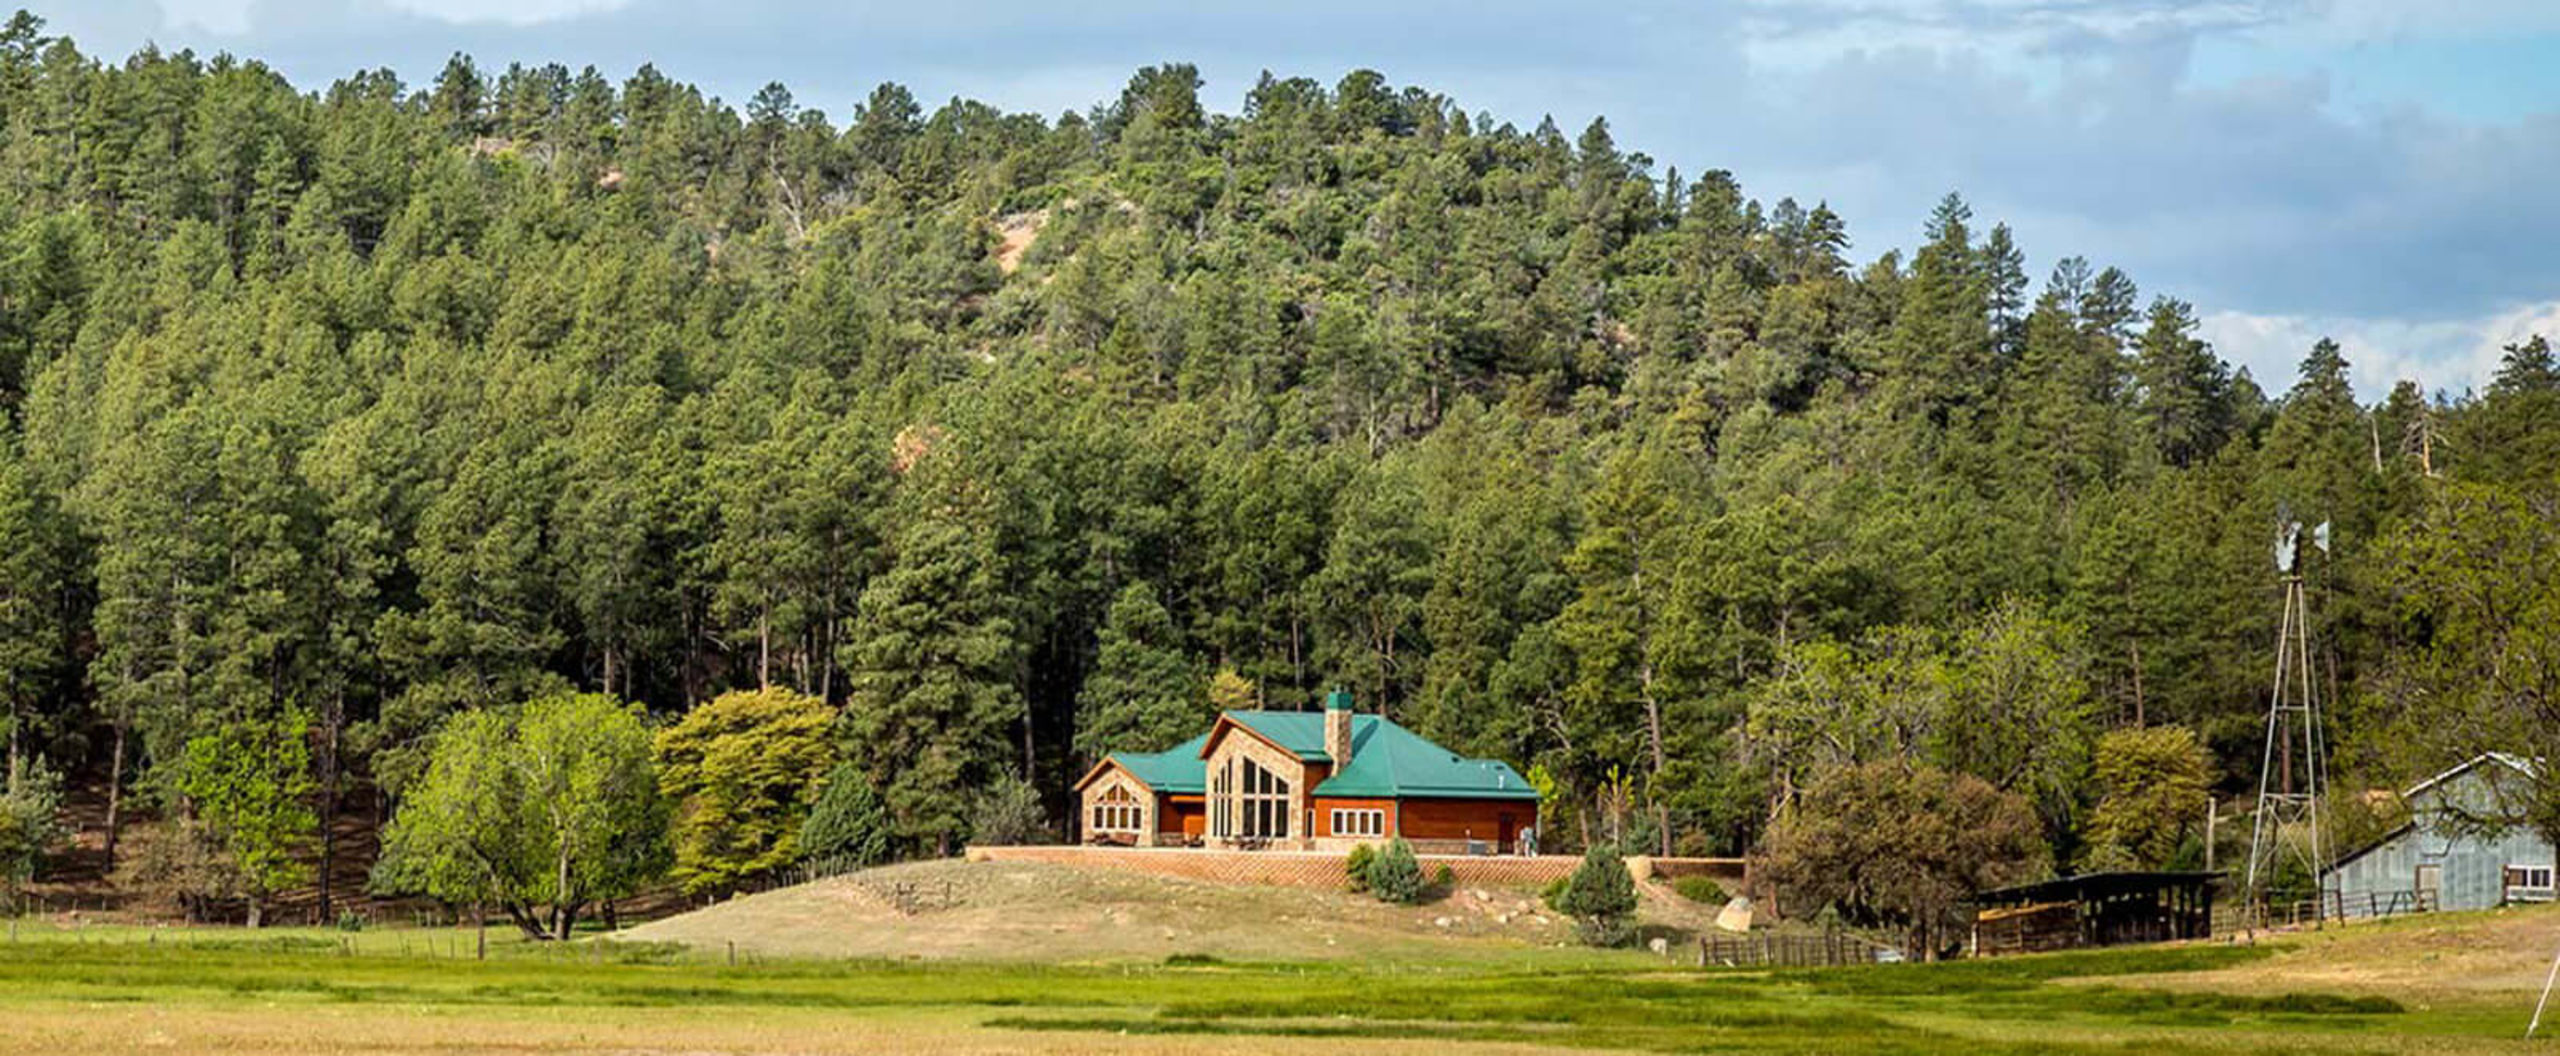 Mountainside Homes in the cool Northern Arizona Pines